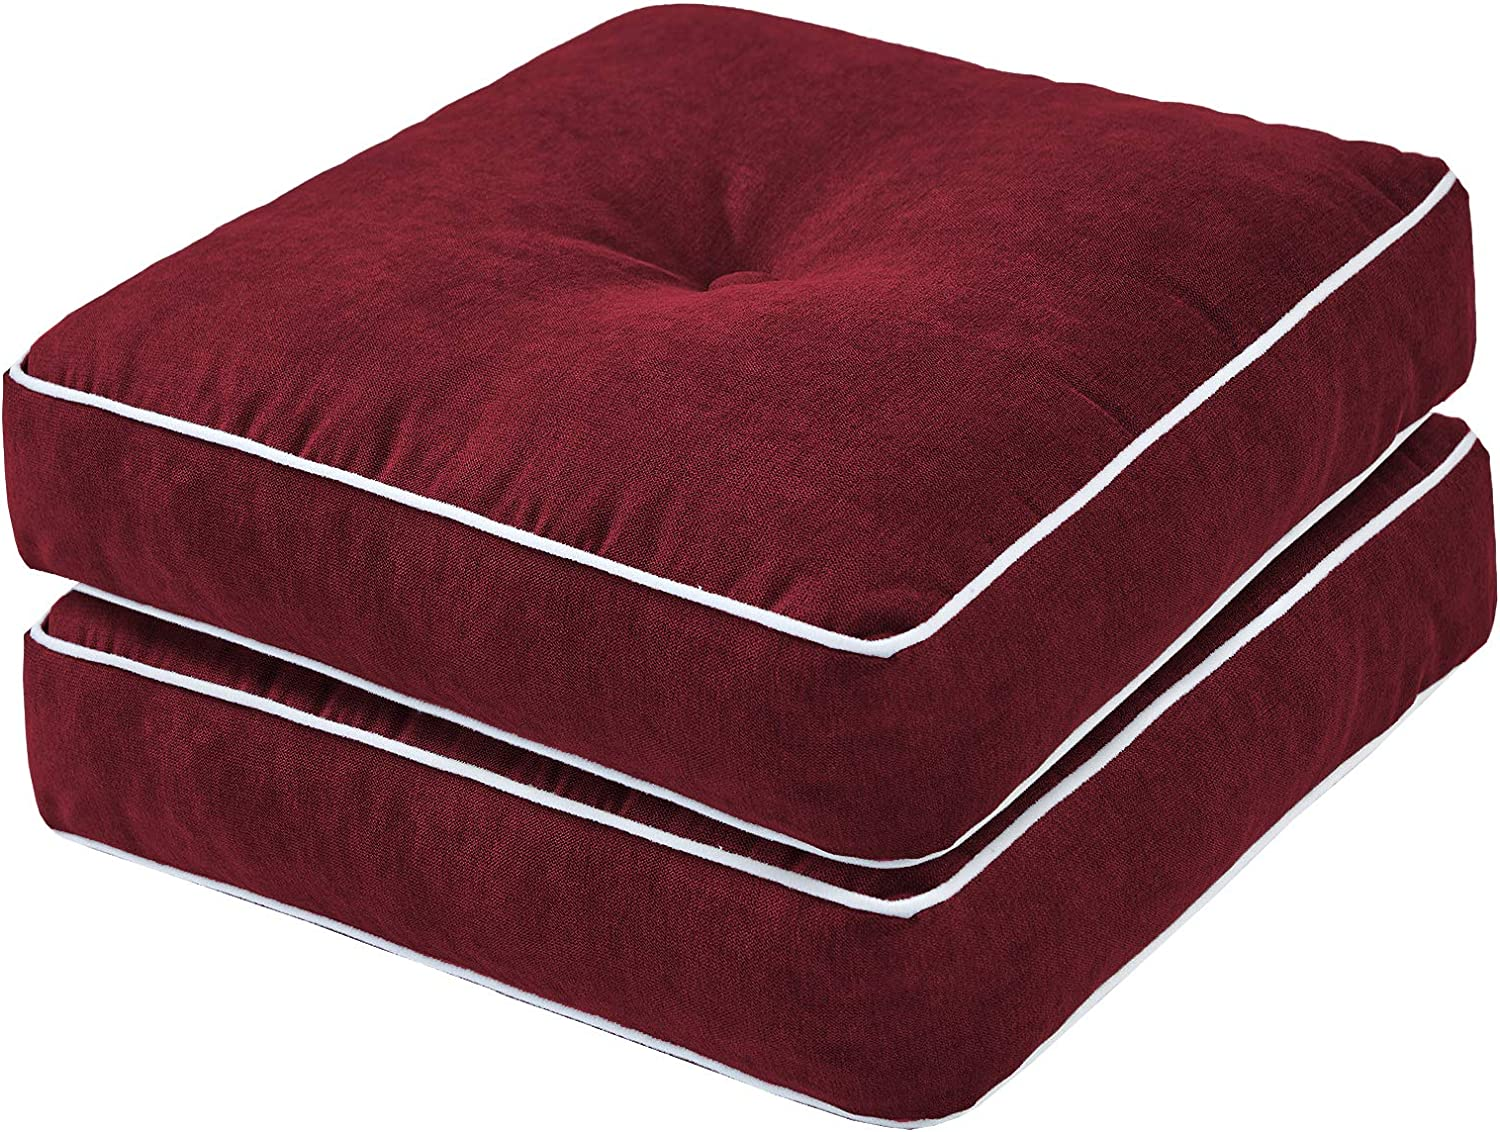 Rainlin Ranking price TOP3 Thicken Floor Pillows for Thick Sea Solid Tufted Seating